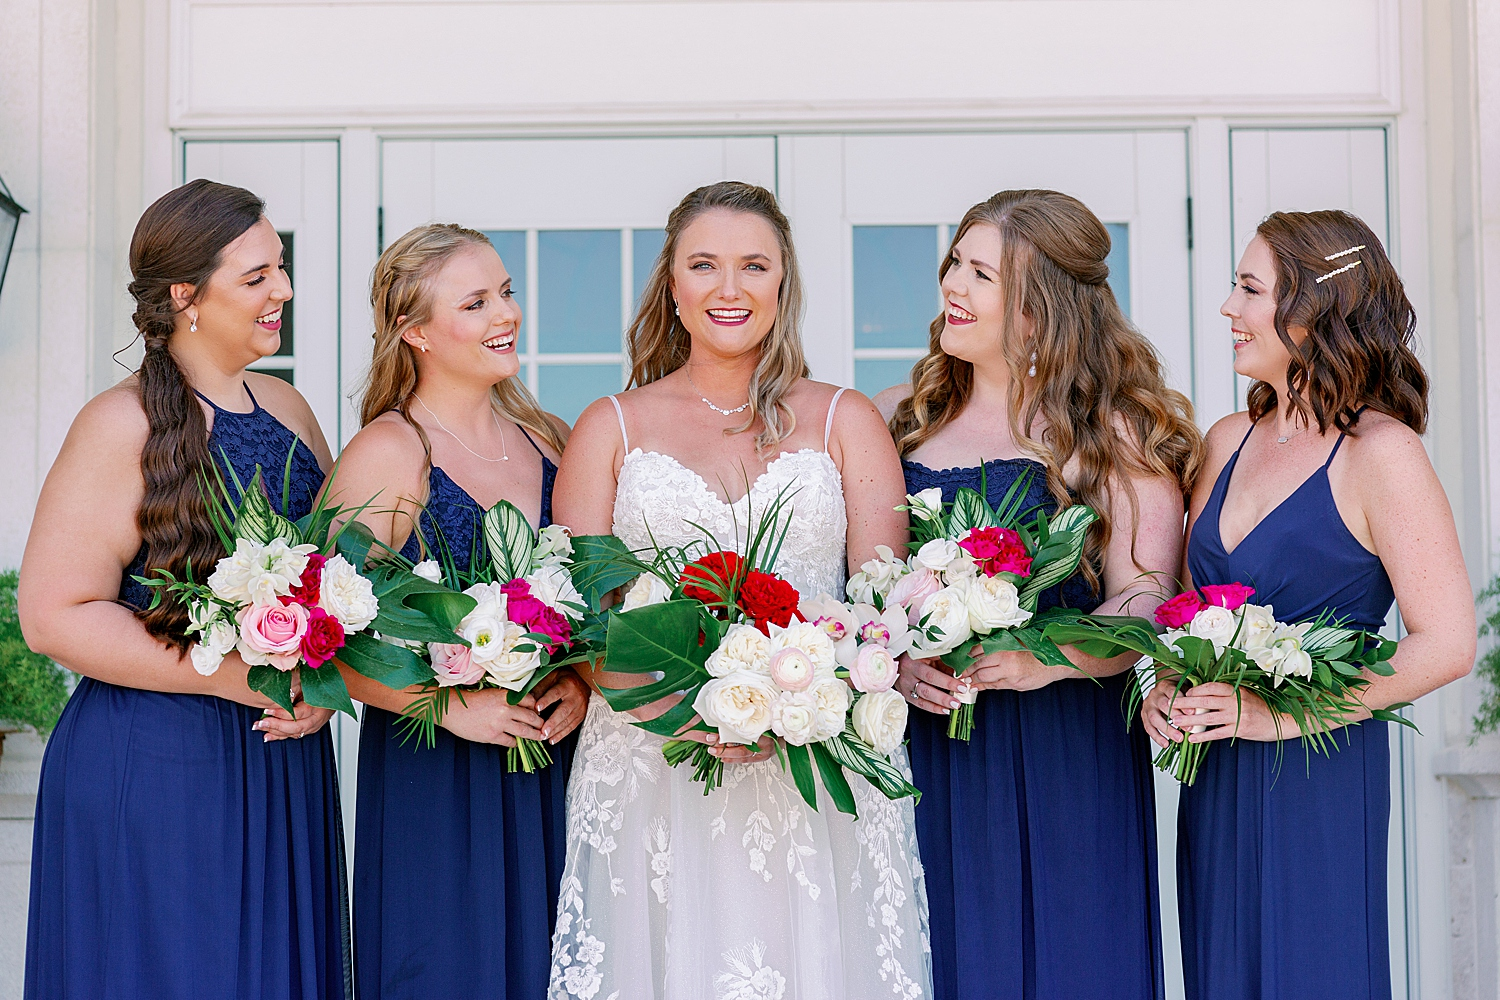 Smiling bride with her bridesmaids